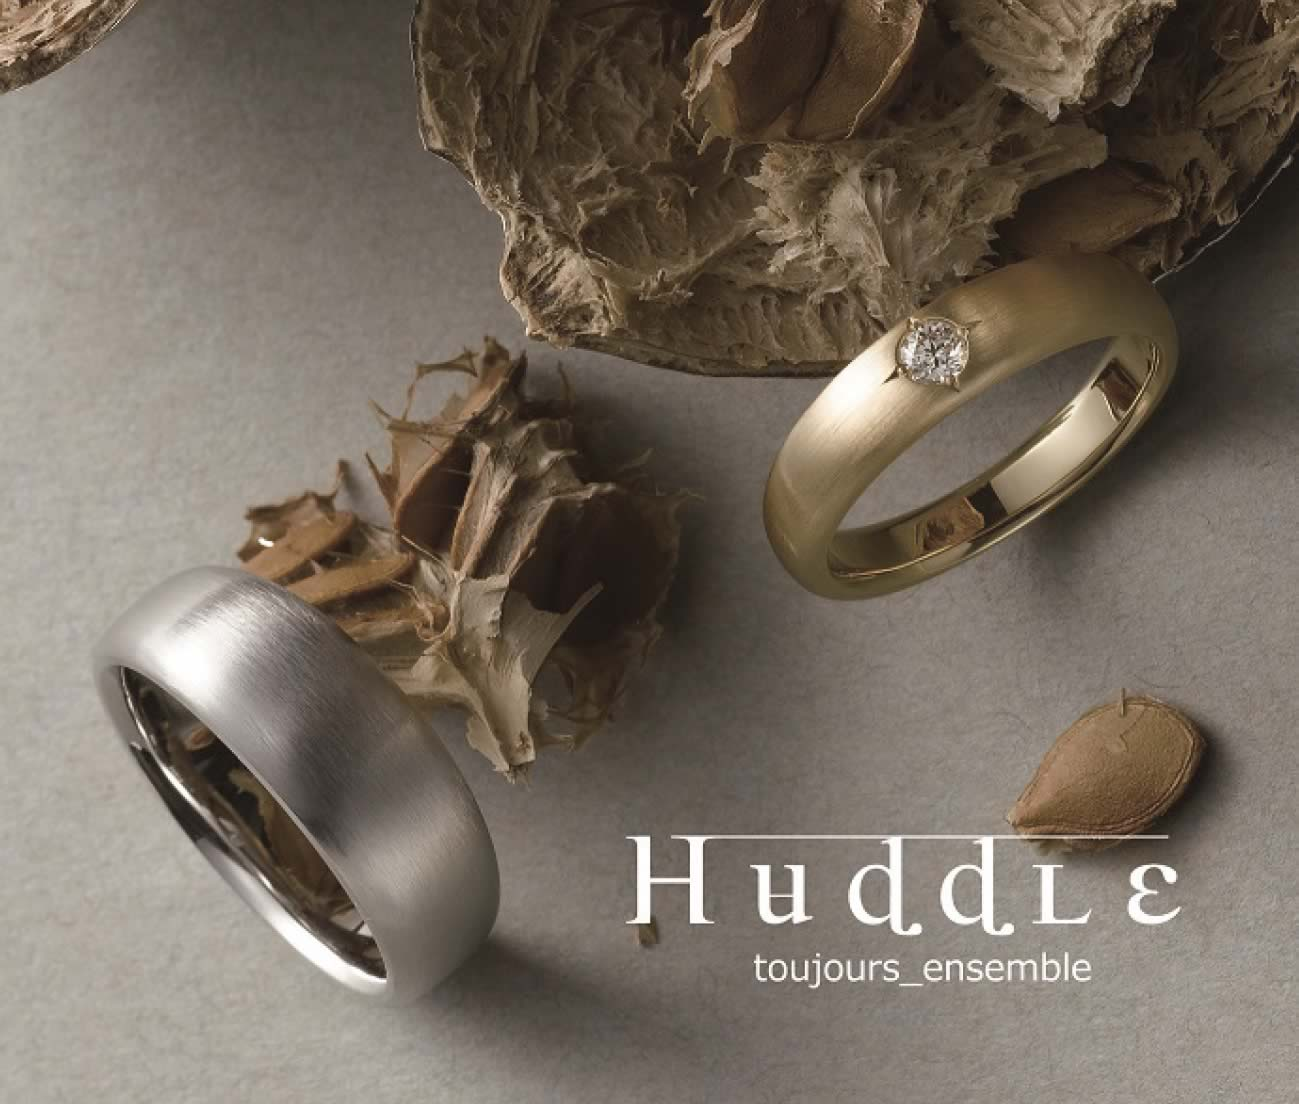 jewelry_top_huddle_02